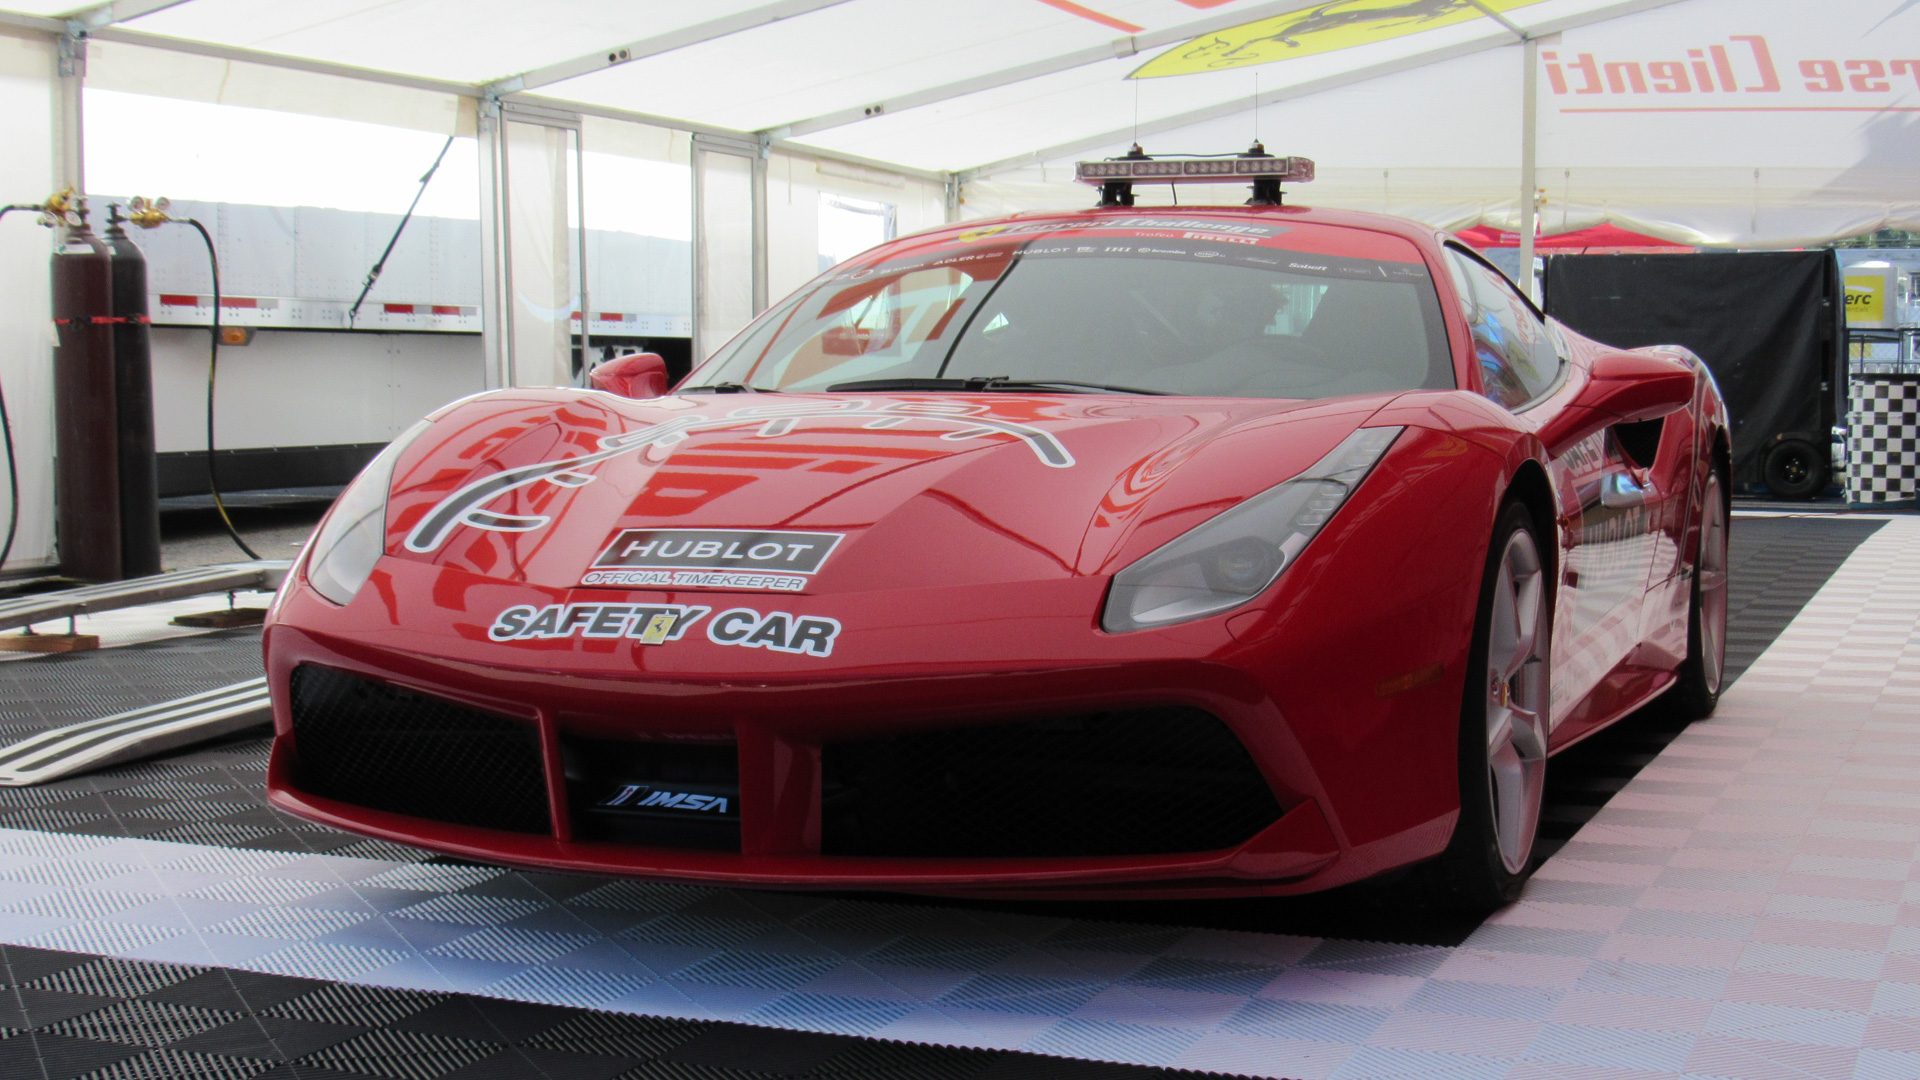 I've always secretly wanted to be a safety car driver.